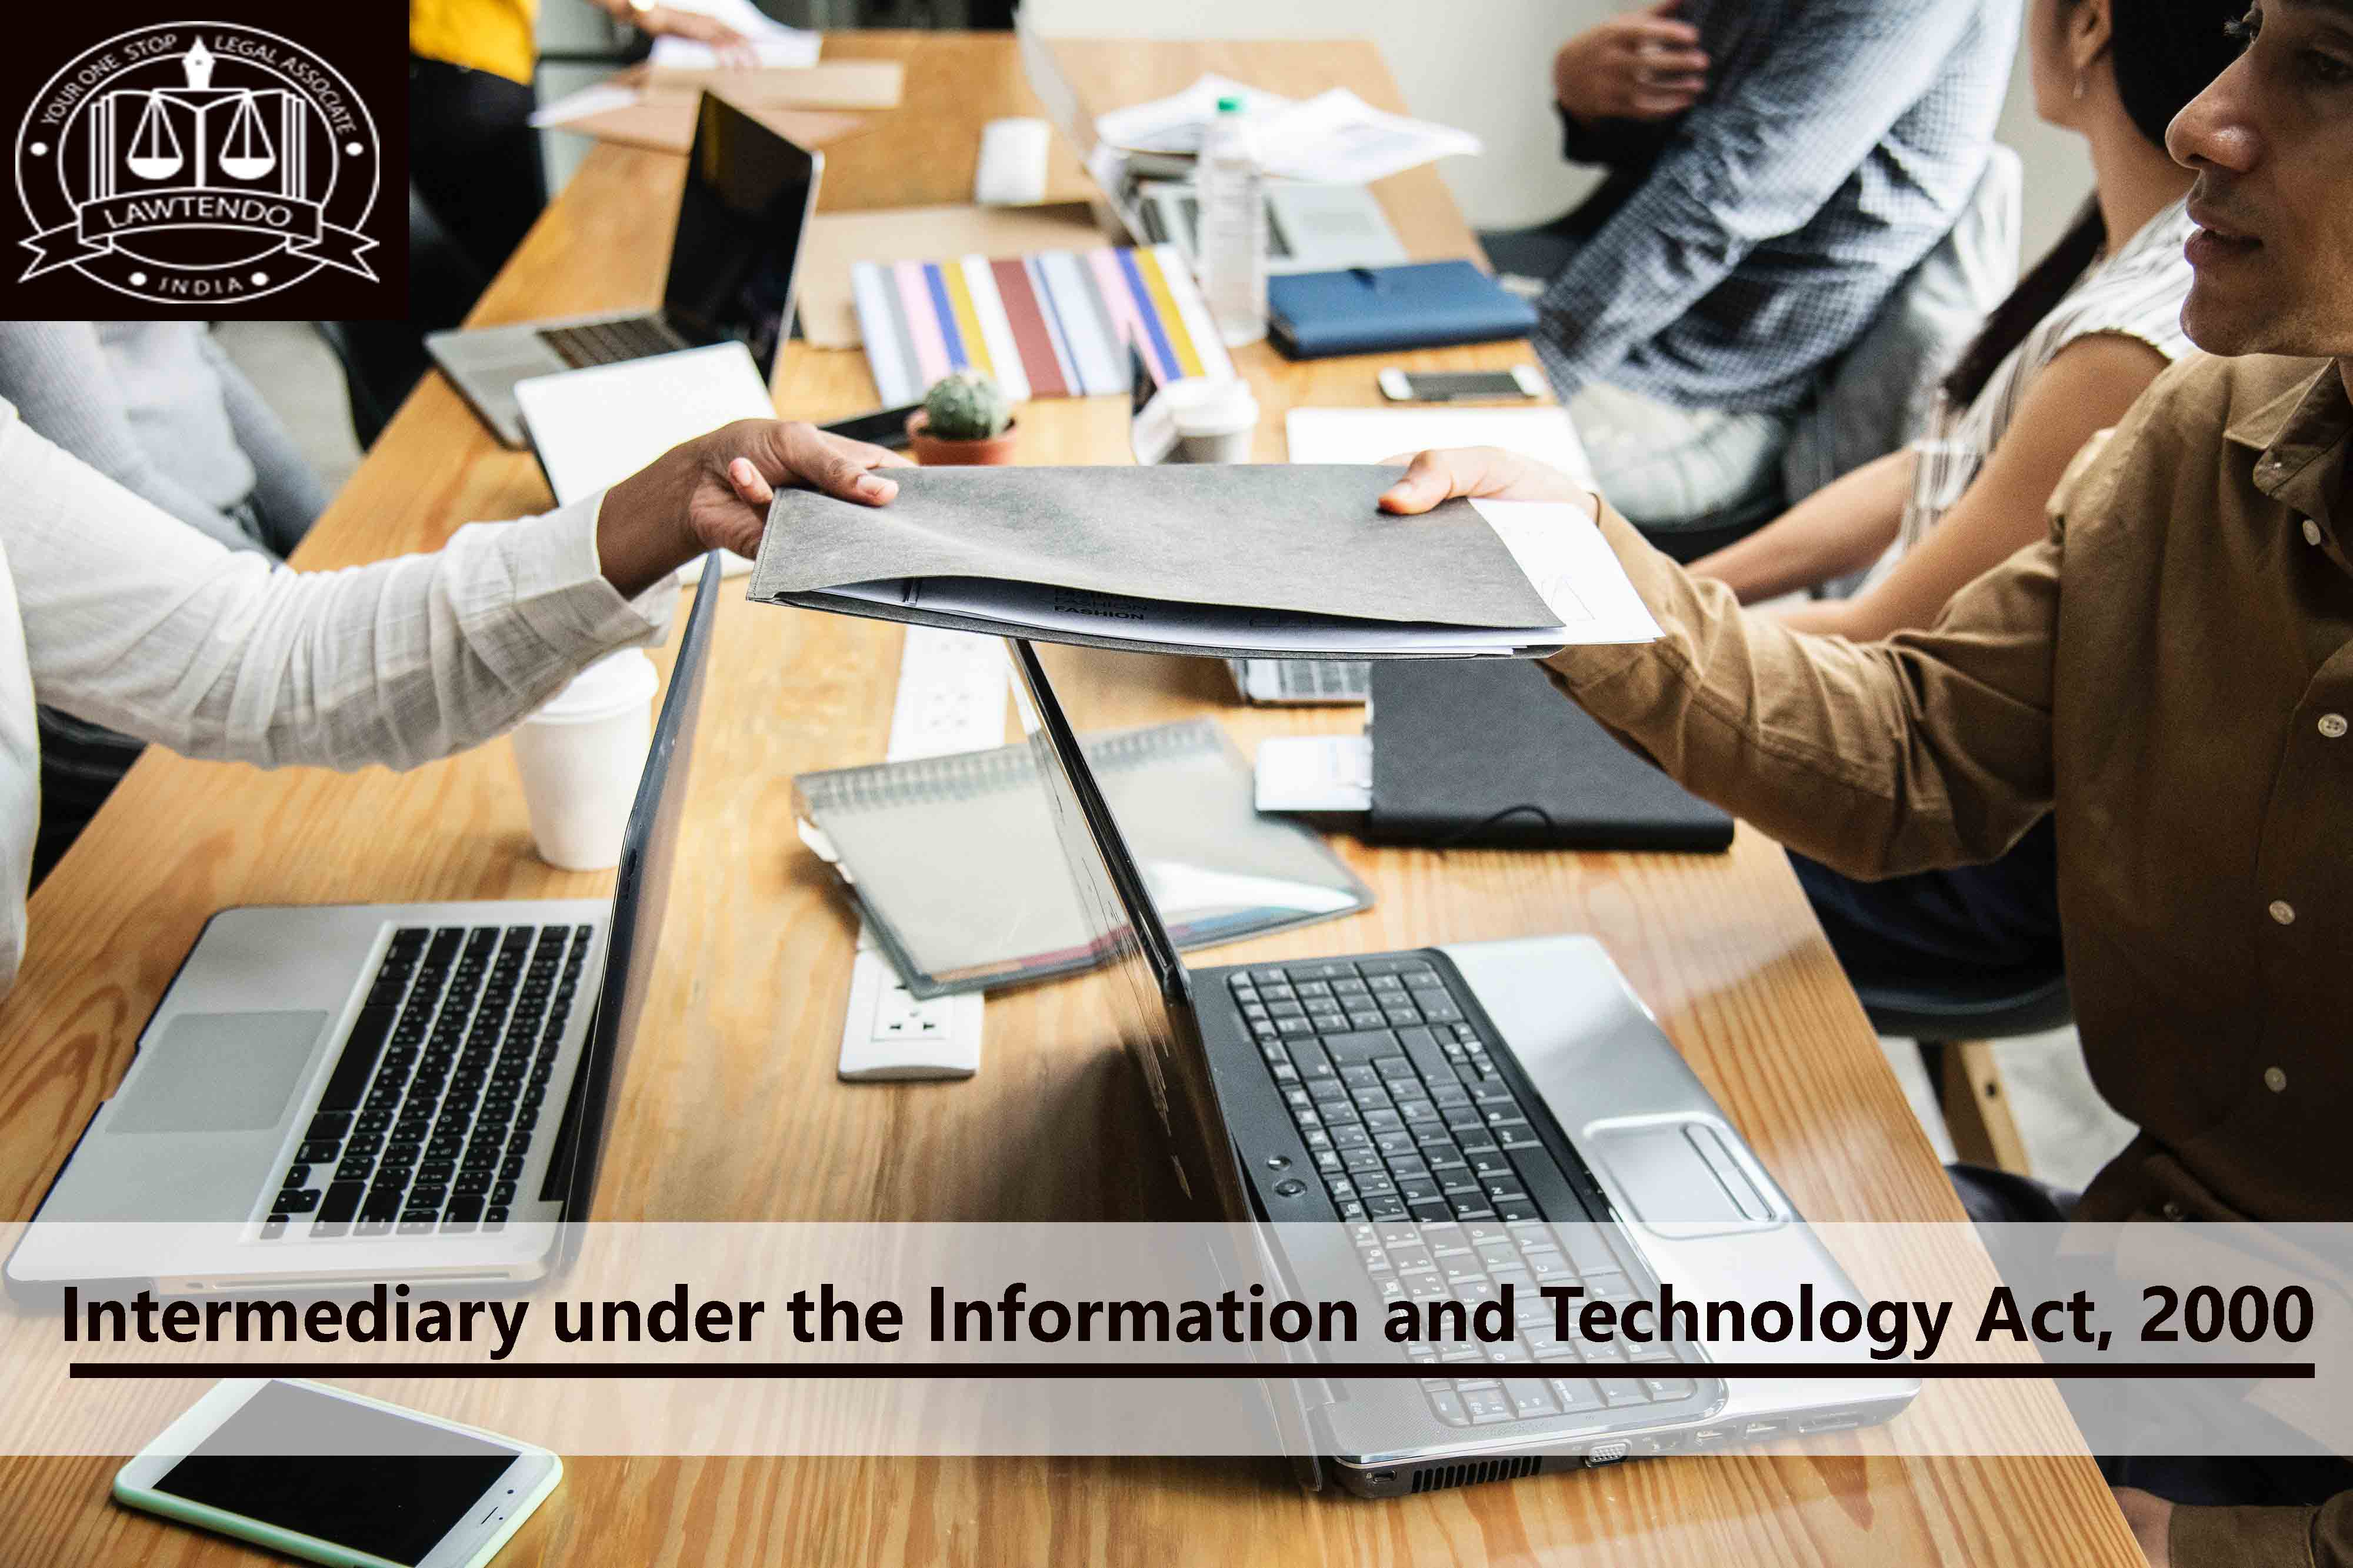 Intermediary under the Information and Technology Act, 2000